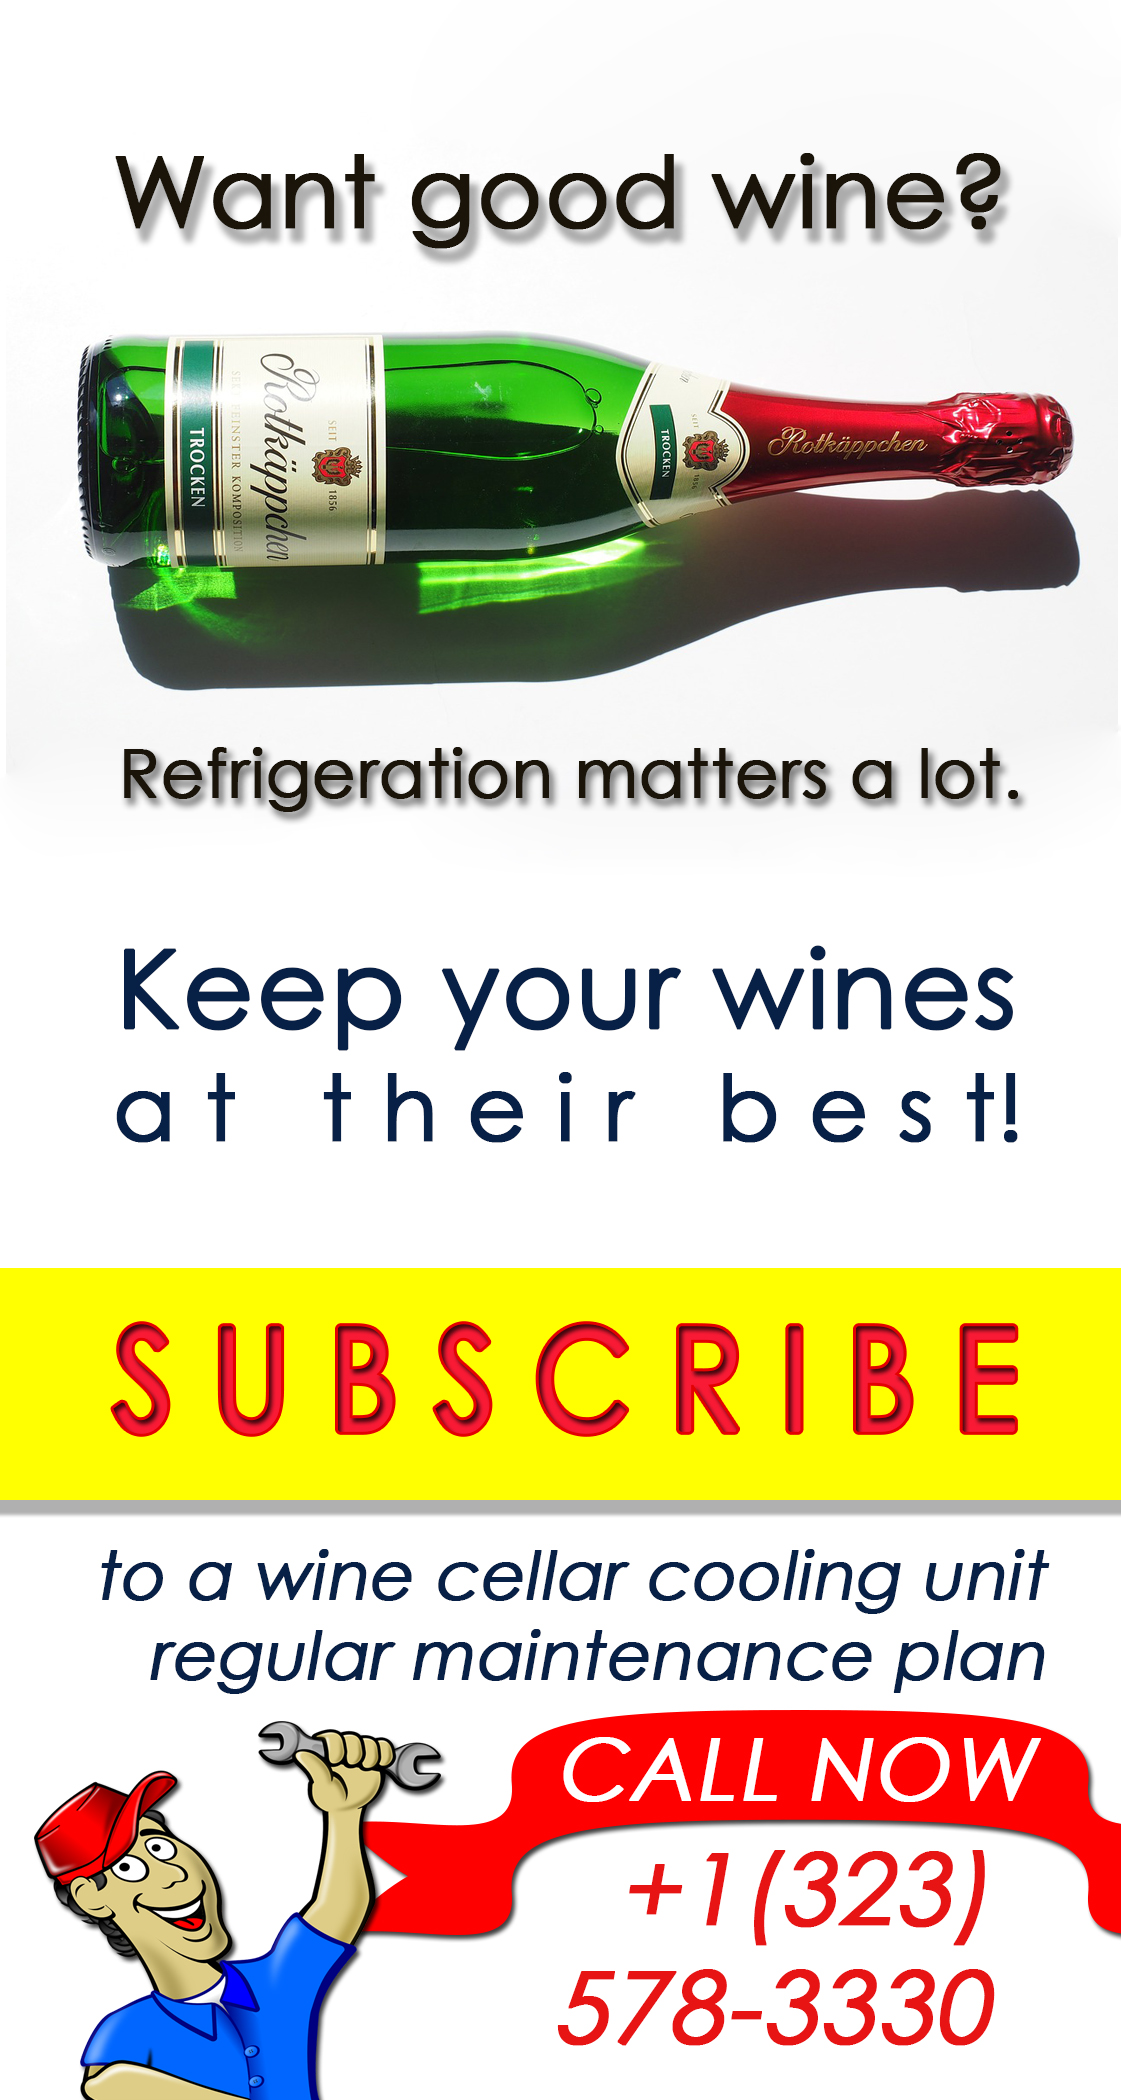 One of the many services that M&M Cellar Systems offers is cooling unit maintenance. Through this service, you can be sure that your refrigeration system is always functioning properly to keep your wines in their best quality. Click here to know more about their services!